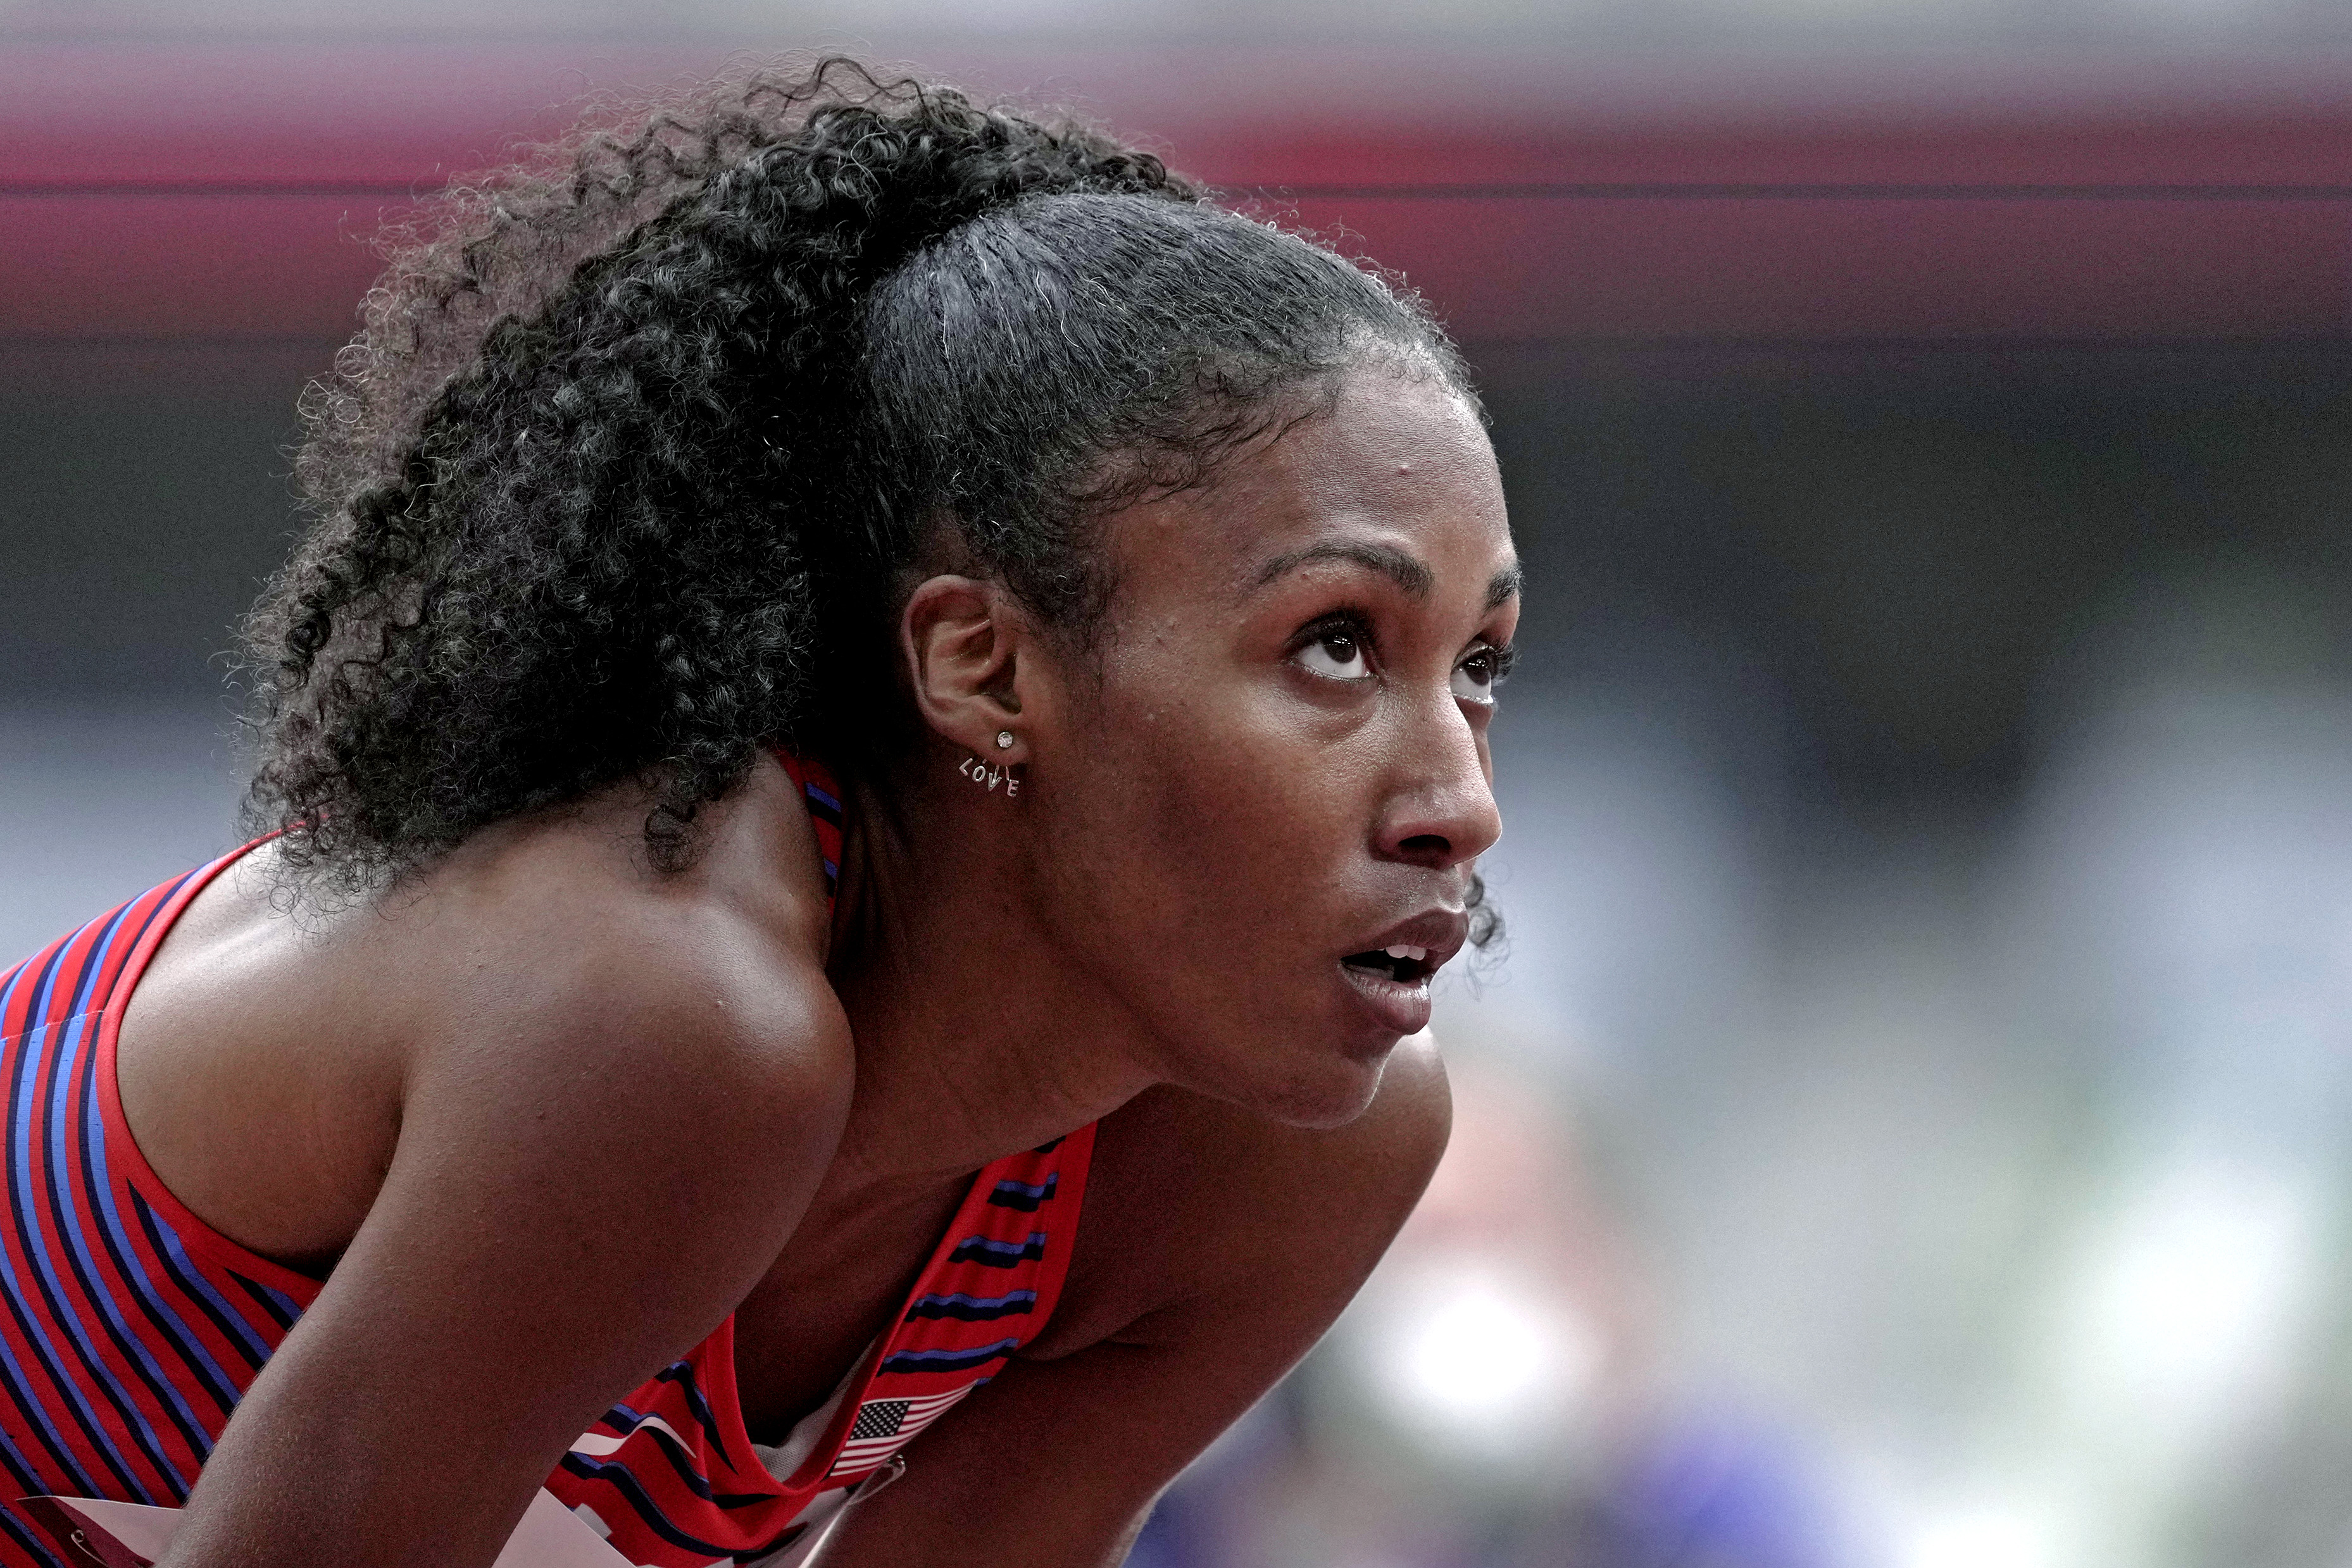 Jul 30, 2021; Tokyo, Japan; Ajee Wilson (USA) competes women's 800m heat 6 during the Tokyo 2020 Olympic Summer Games at Olympic Stadium. Mandatory Credit: James Lang-USA TODAY Sports